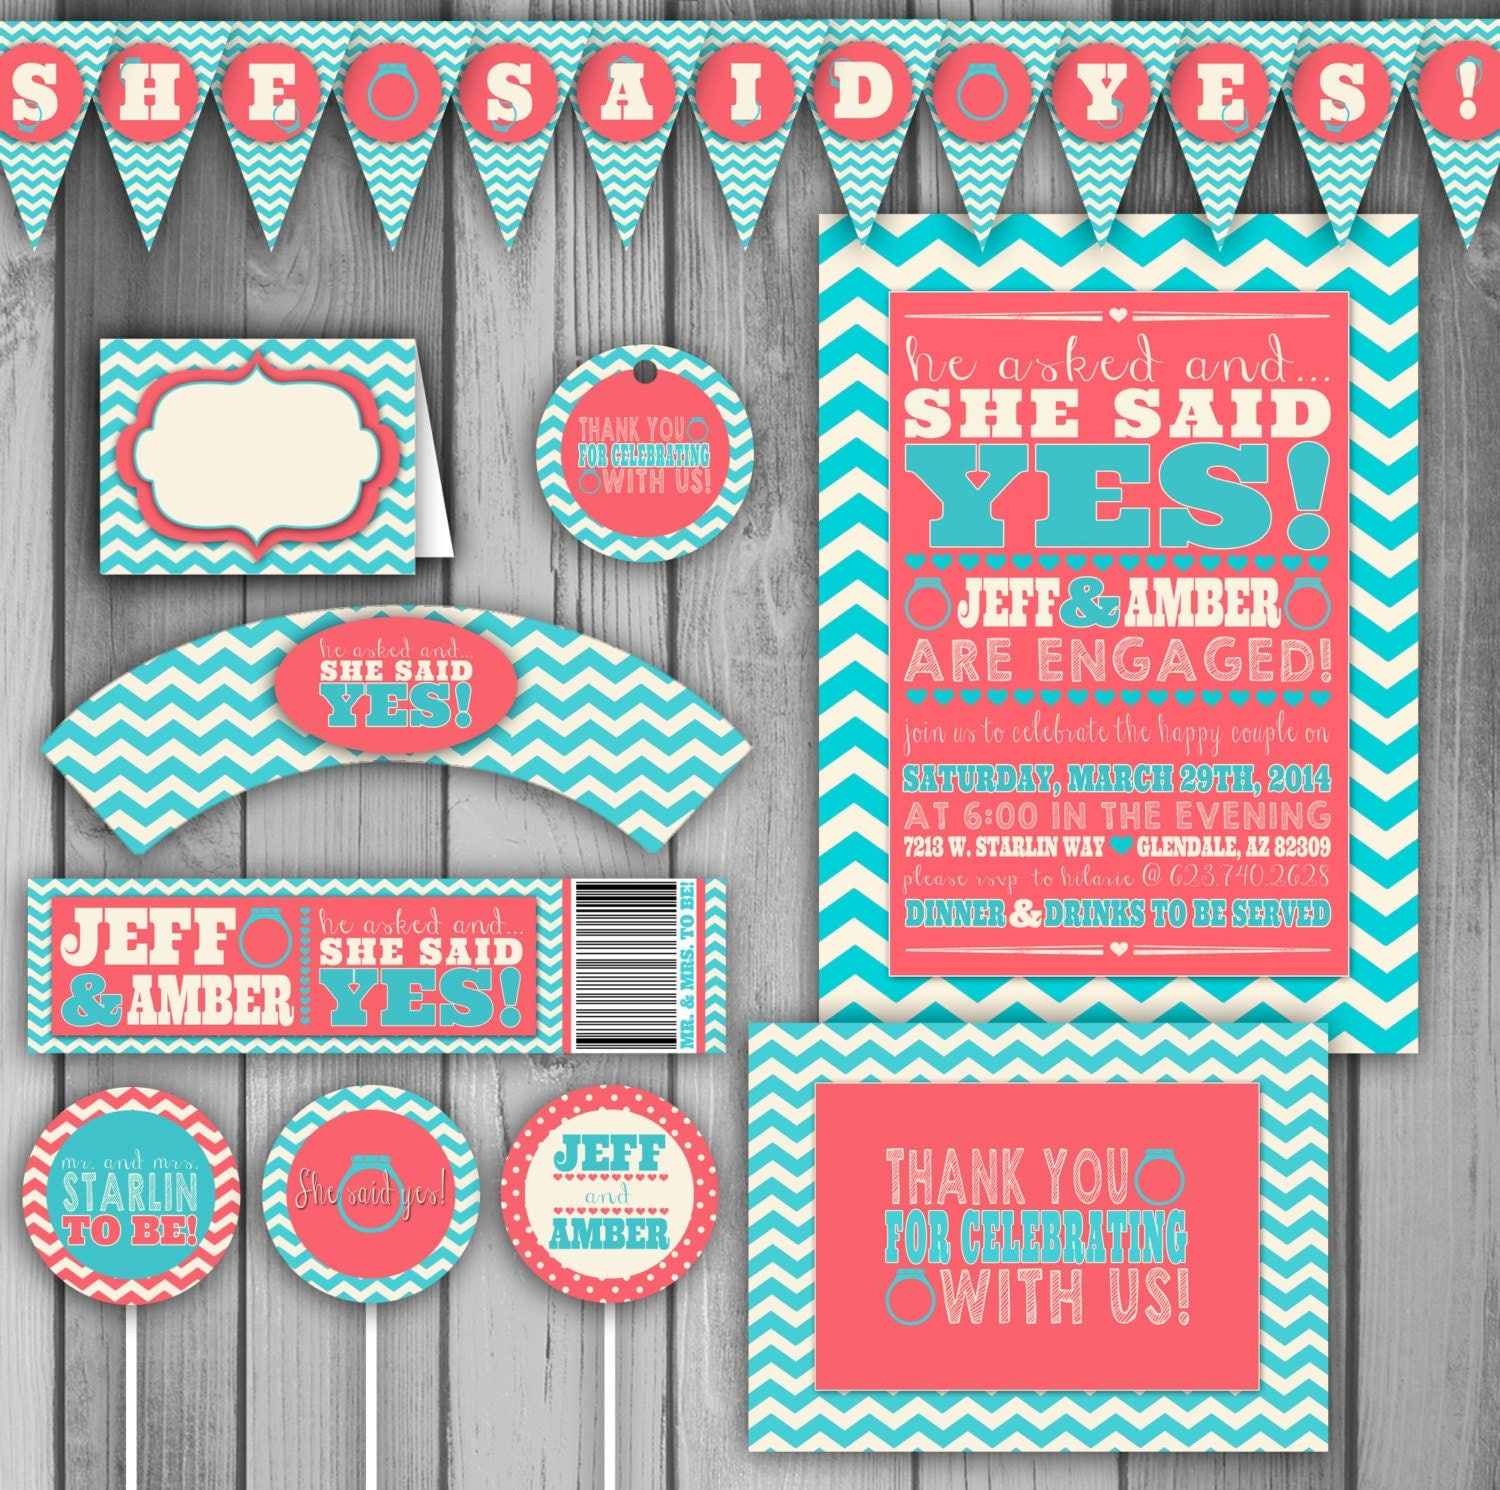 Engagement party invitation engagement party by claceydesign for Etsy engagement party invites